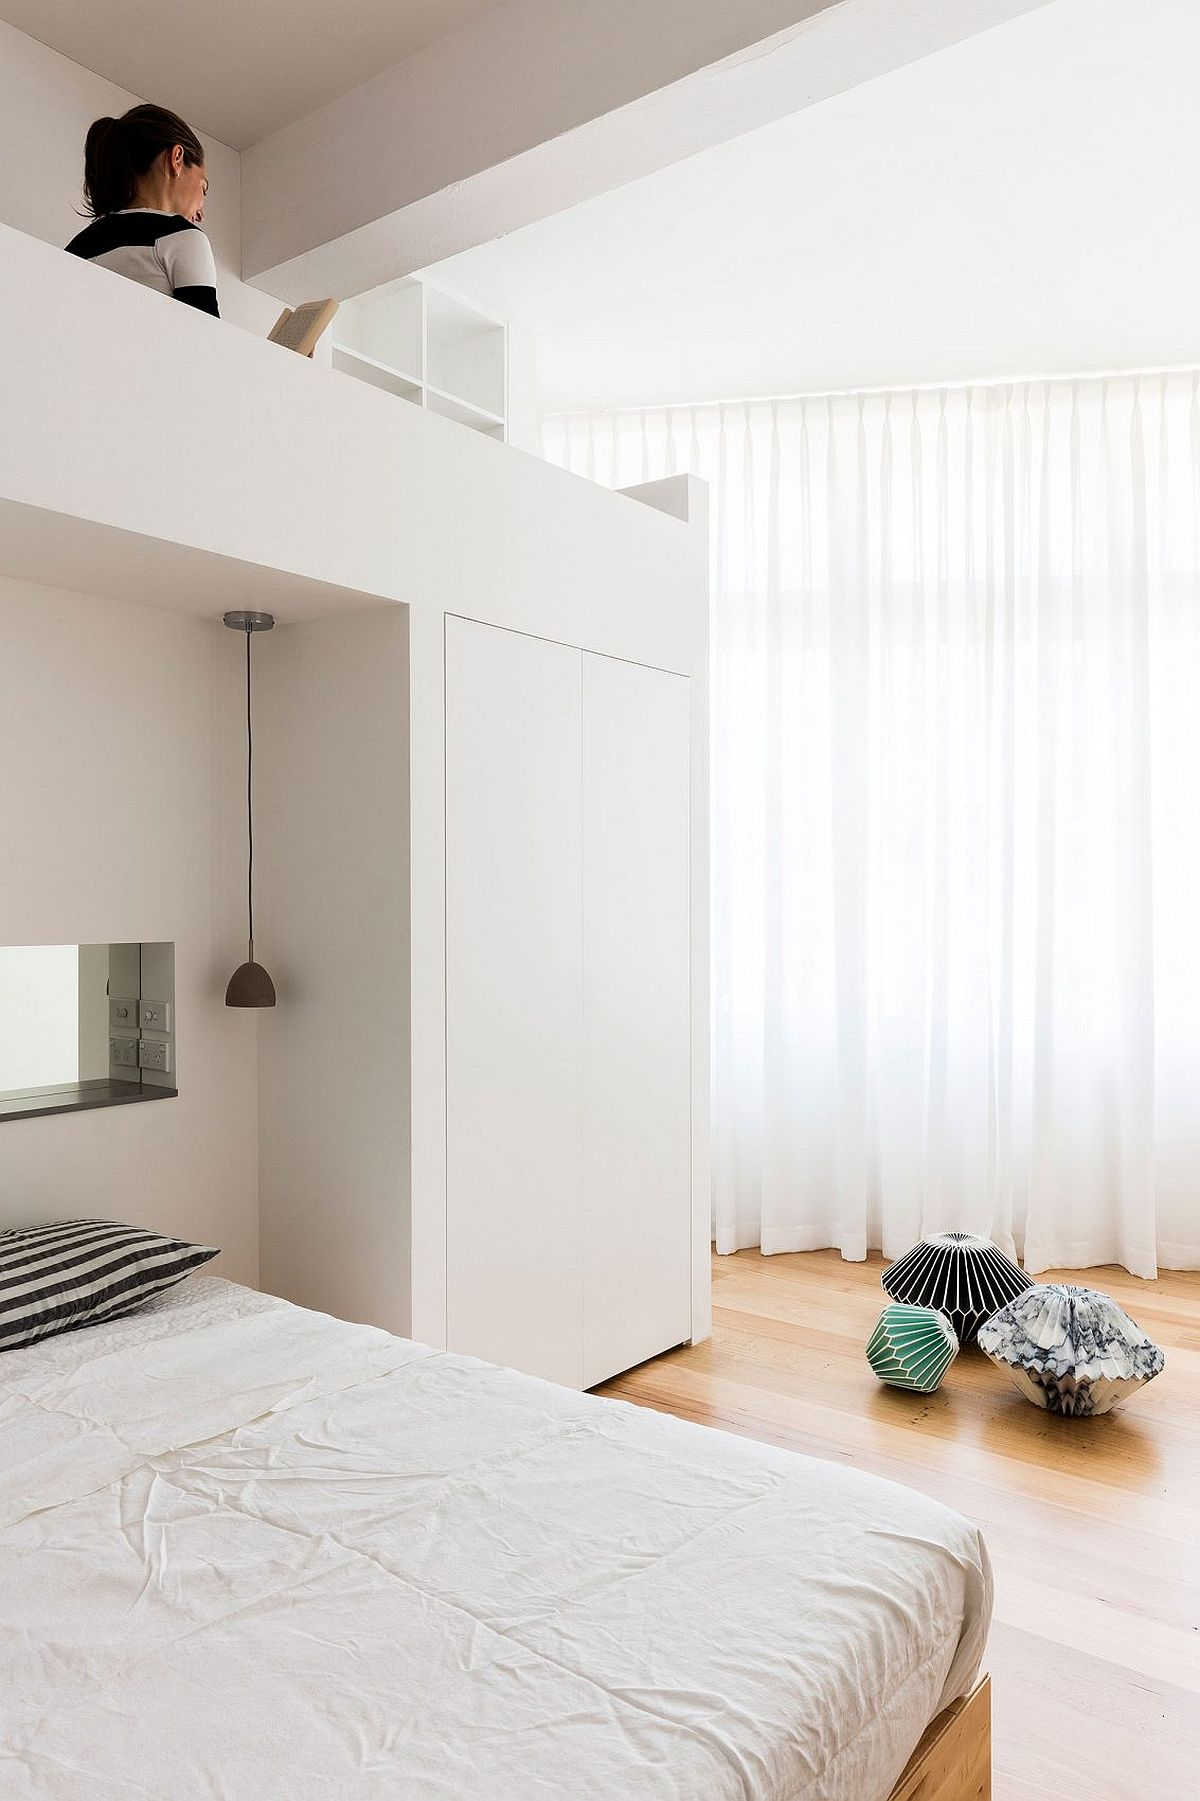 Loft bed in the small bedroom is a space-saver